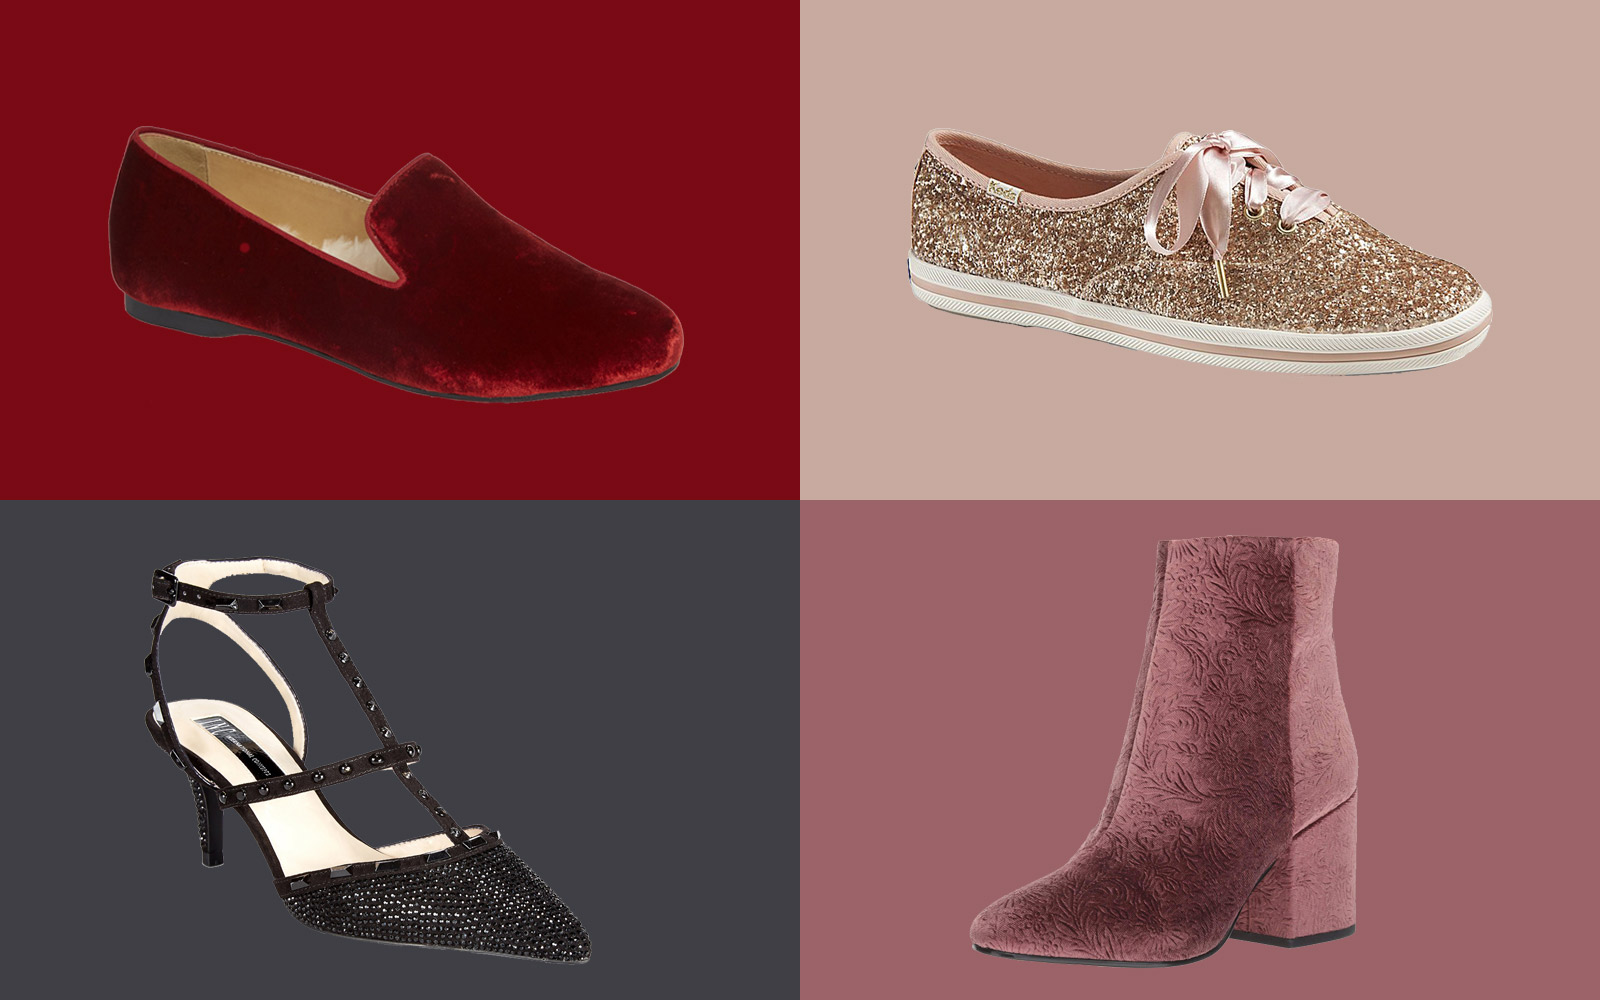 The Best Comfort Footwear for New Year's Eve — Heels, Boots, Even Sneakers